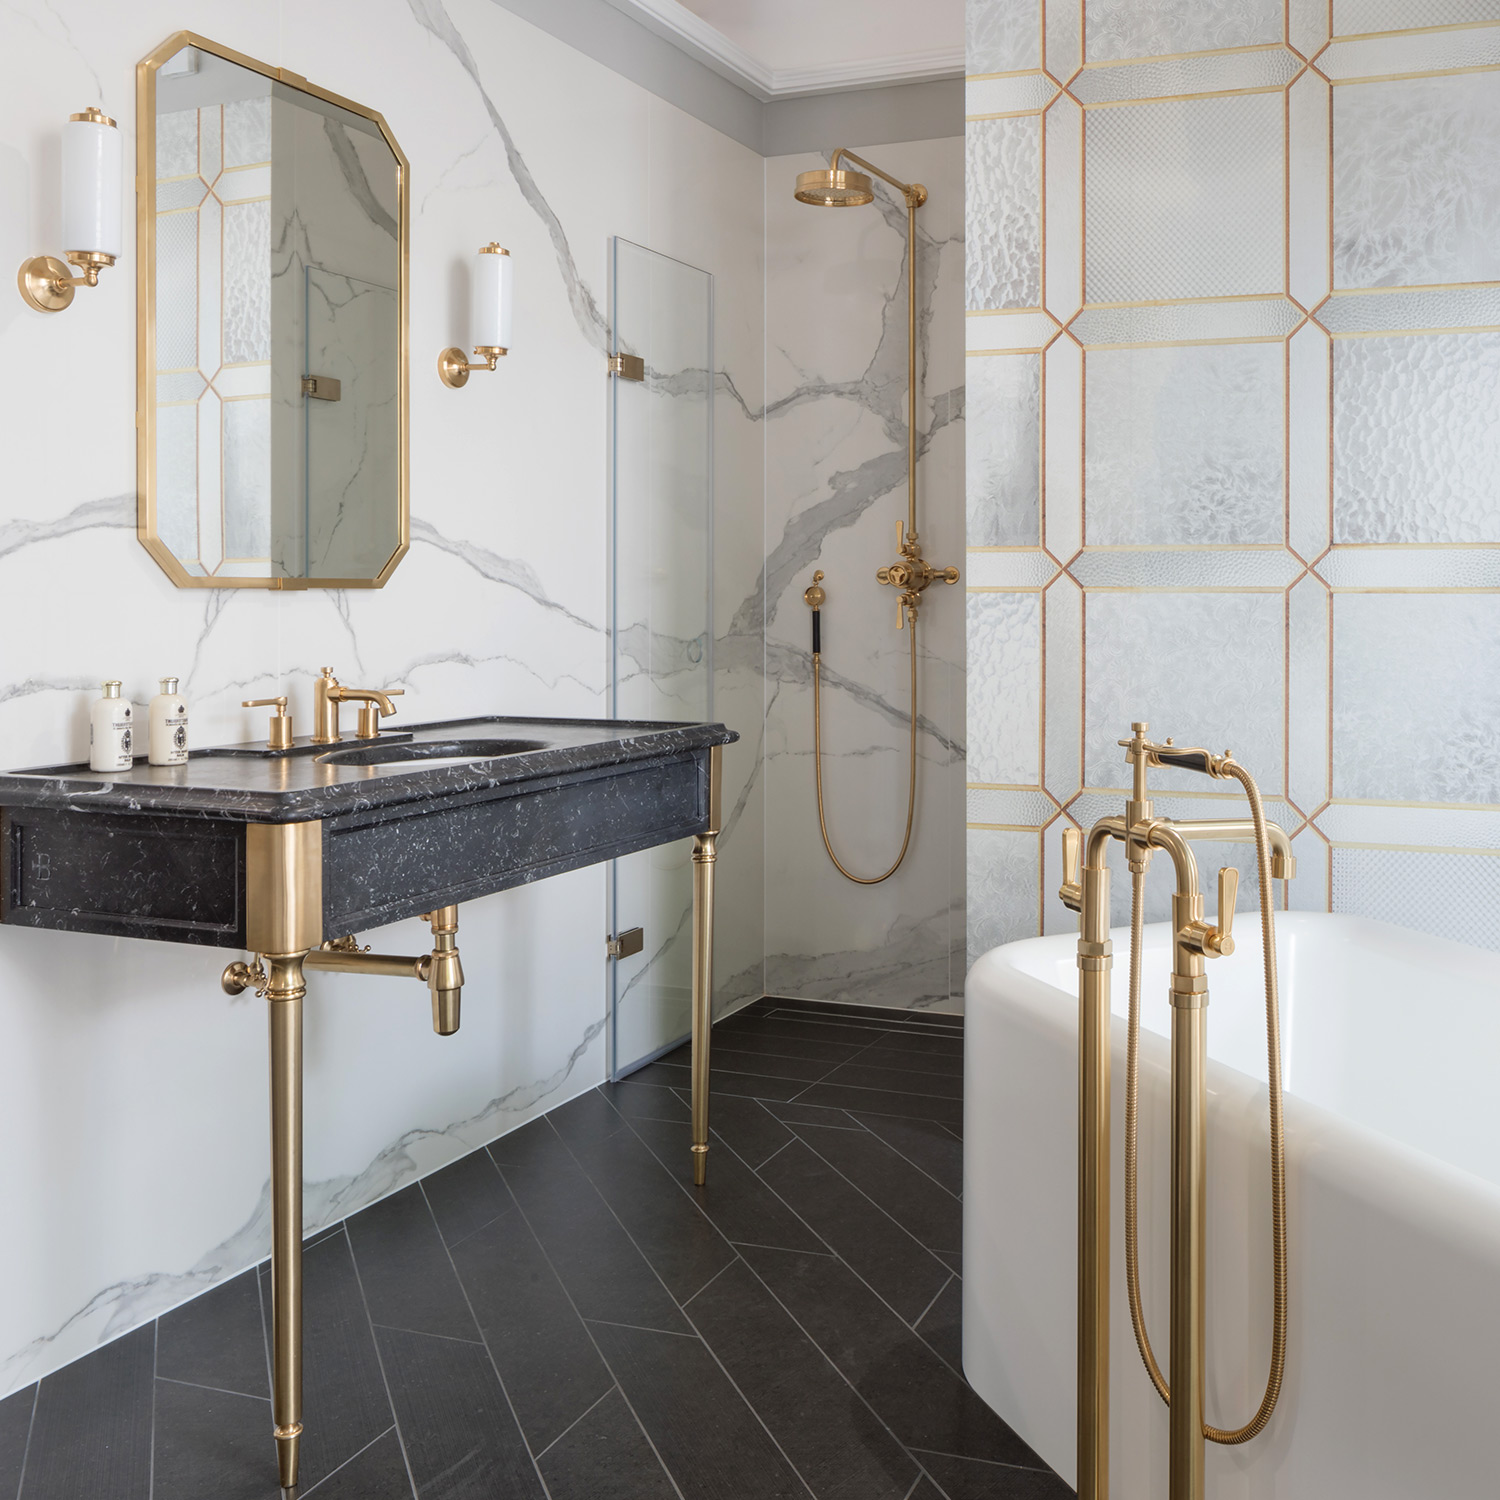 west one bathrooms knightsbridge showroom thurloe place